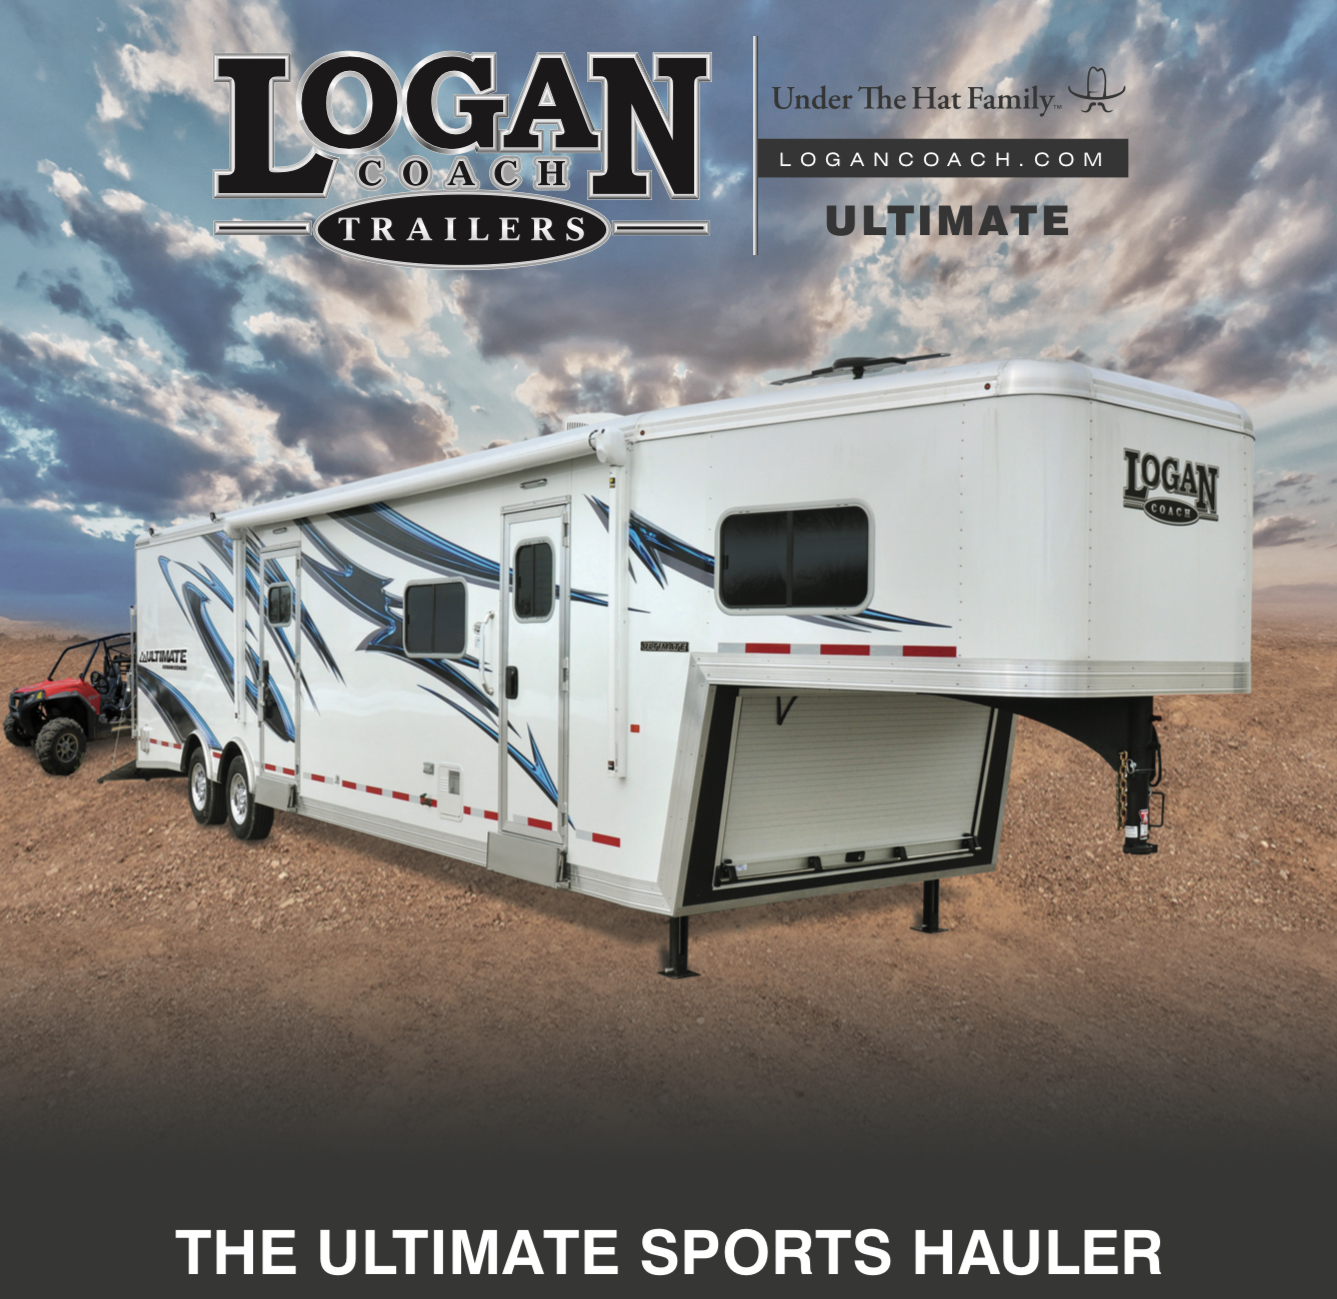 logan coach rsquo s ldquo the ultimate sports hauler rdquo